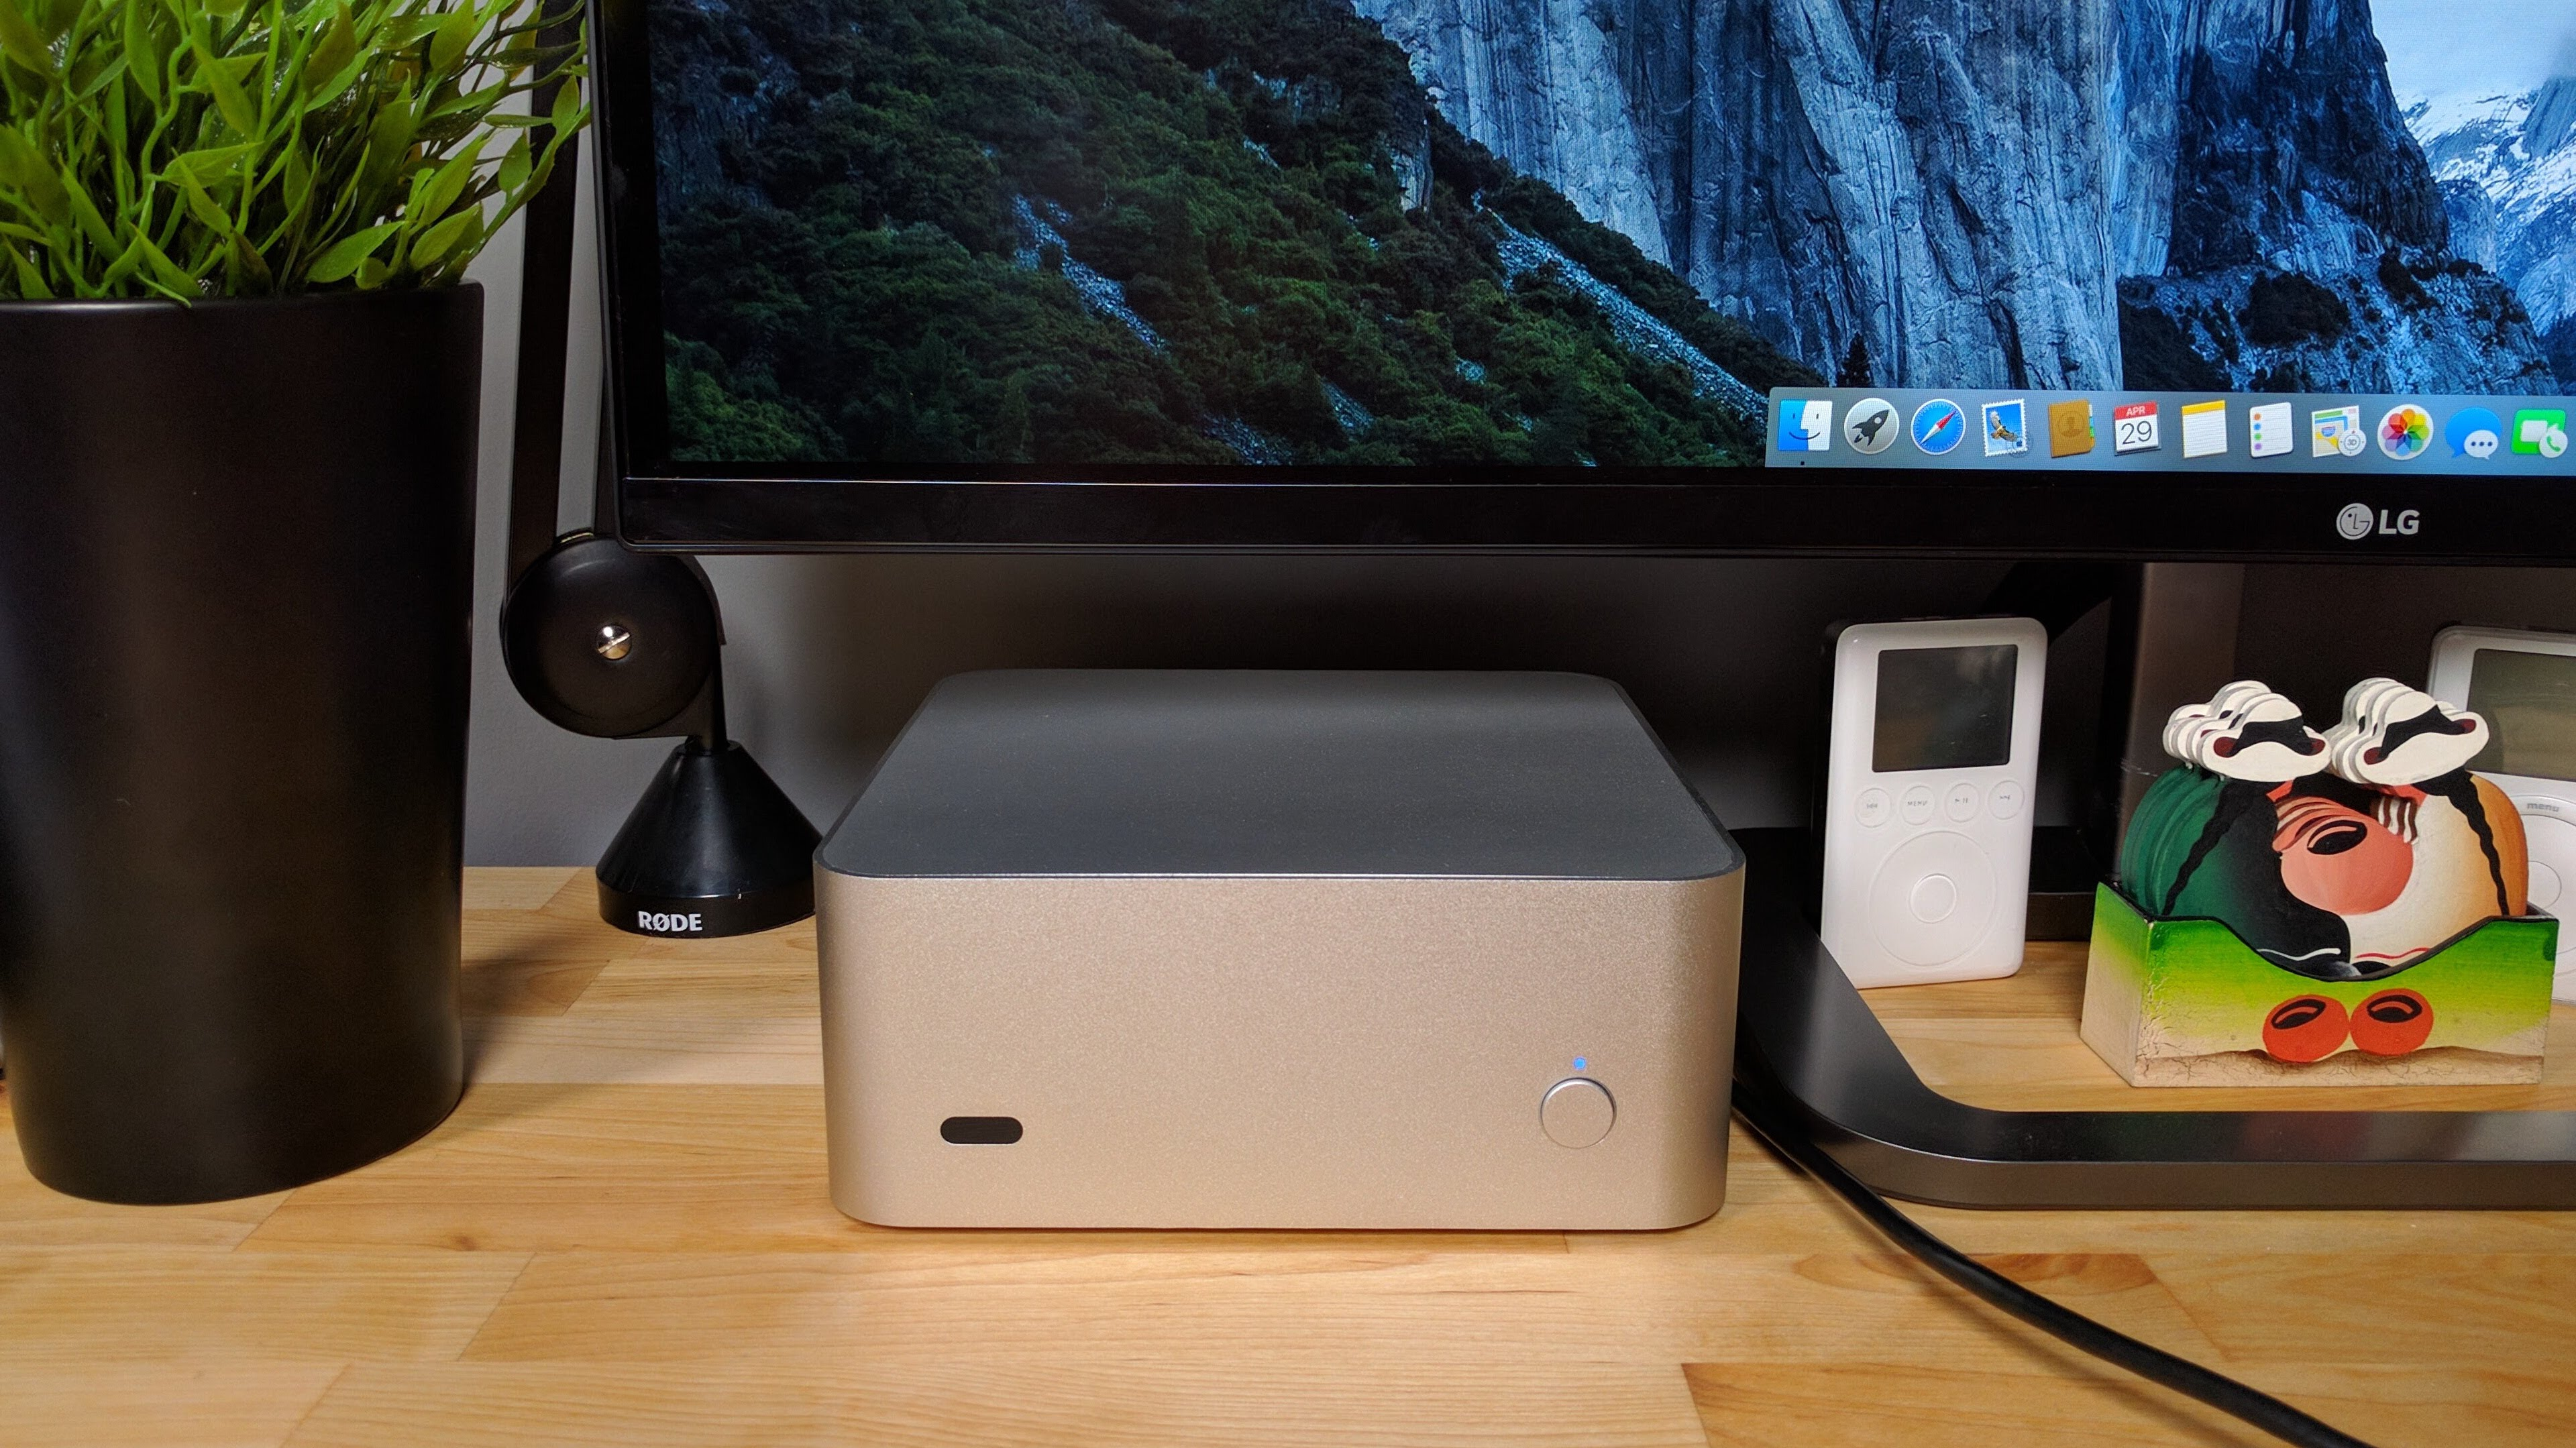 mac mini hook up The mac mini is a small desktop computer manufactured by apple inc like  earlier mini-itx pc  the updated unibody mac mini is apple's first computer  with an hdmi video port to connect to a television or other display, more readily.